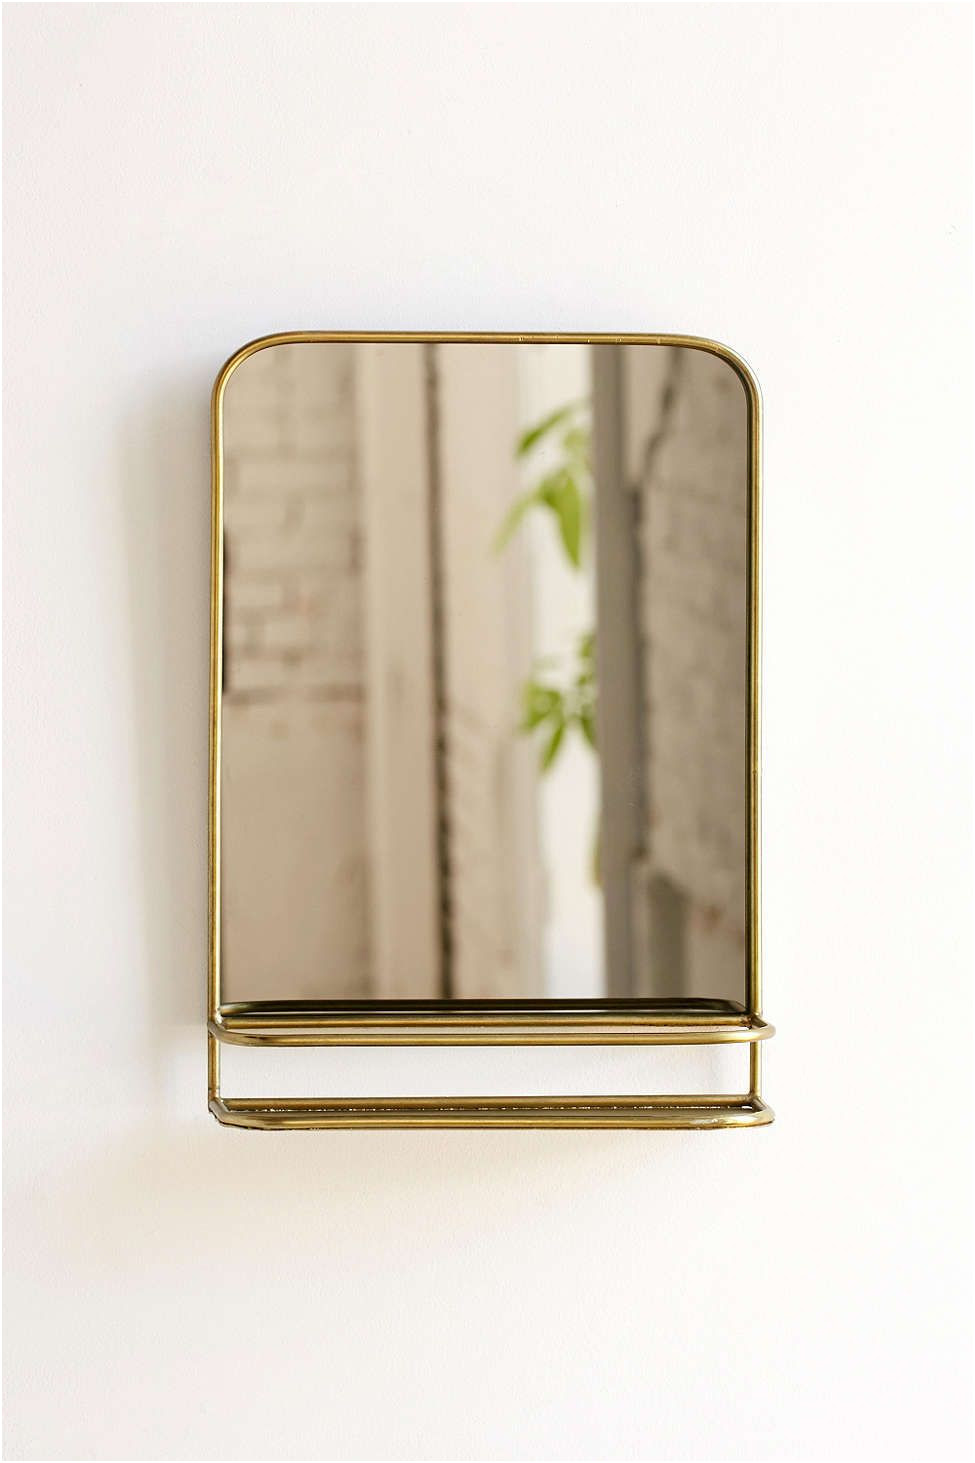 Luxury Gold Bathroom Mirror with Shelf